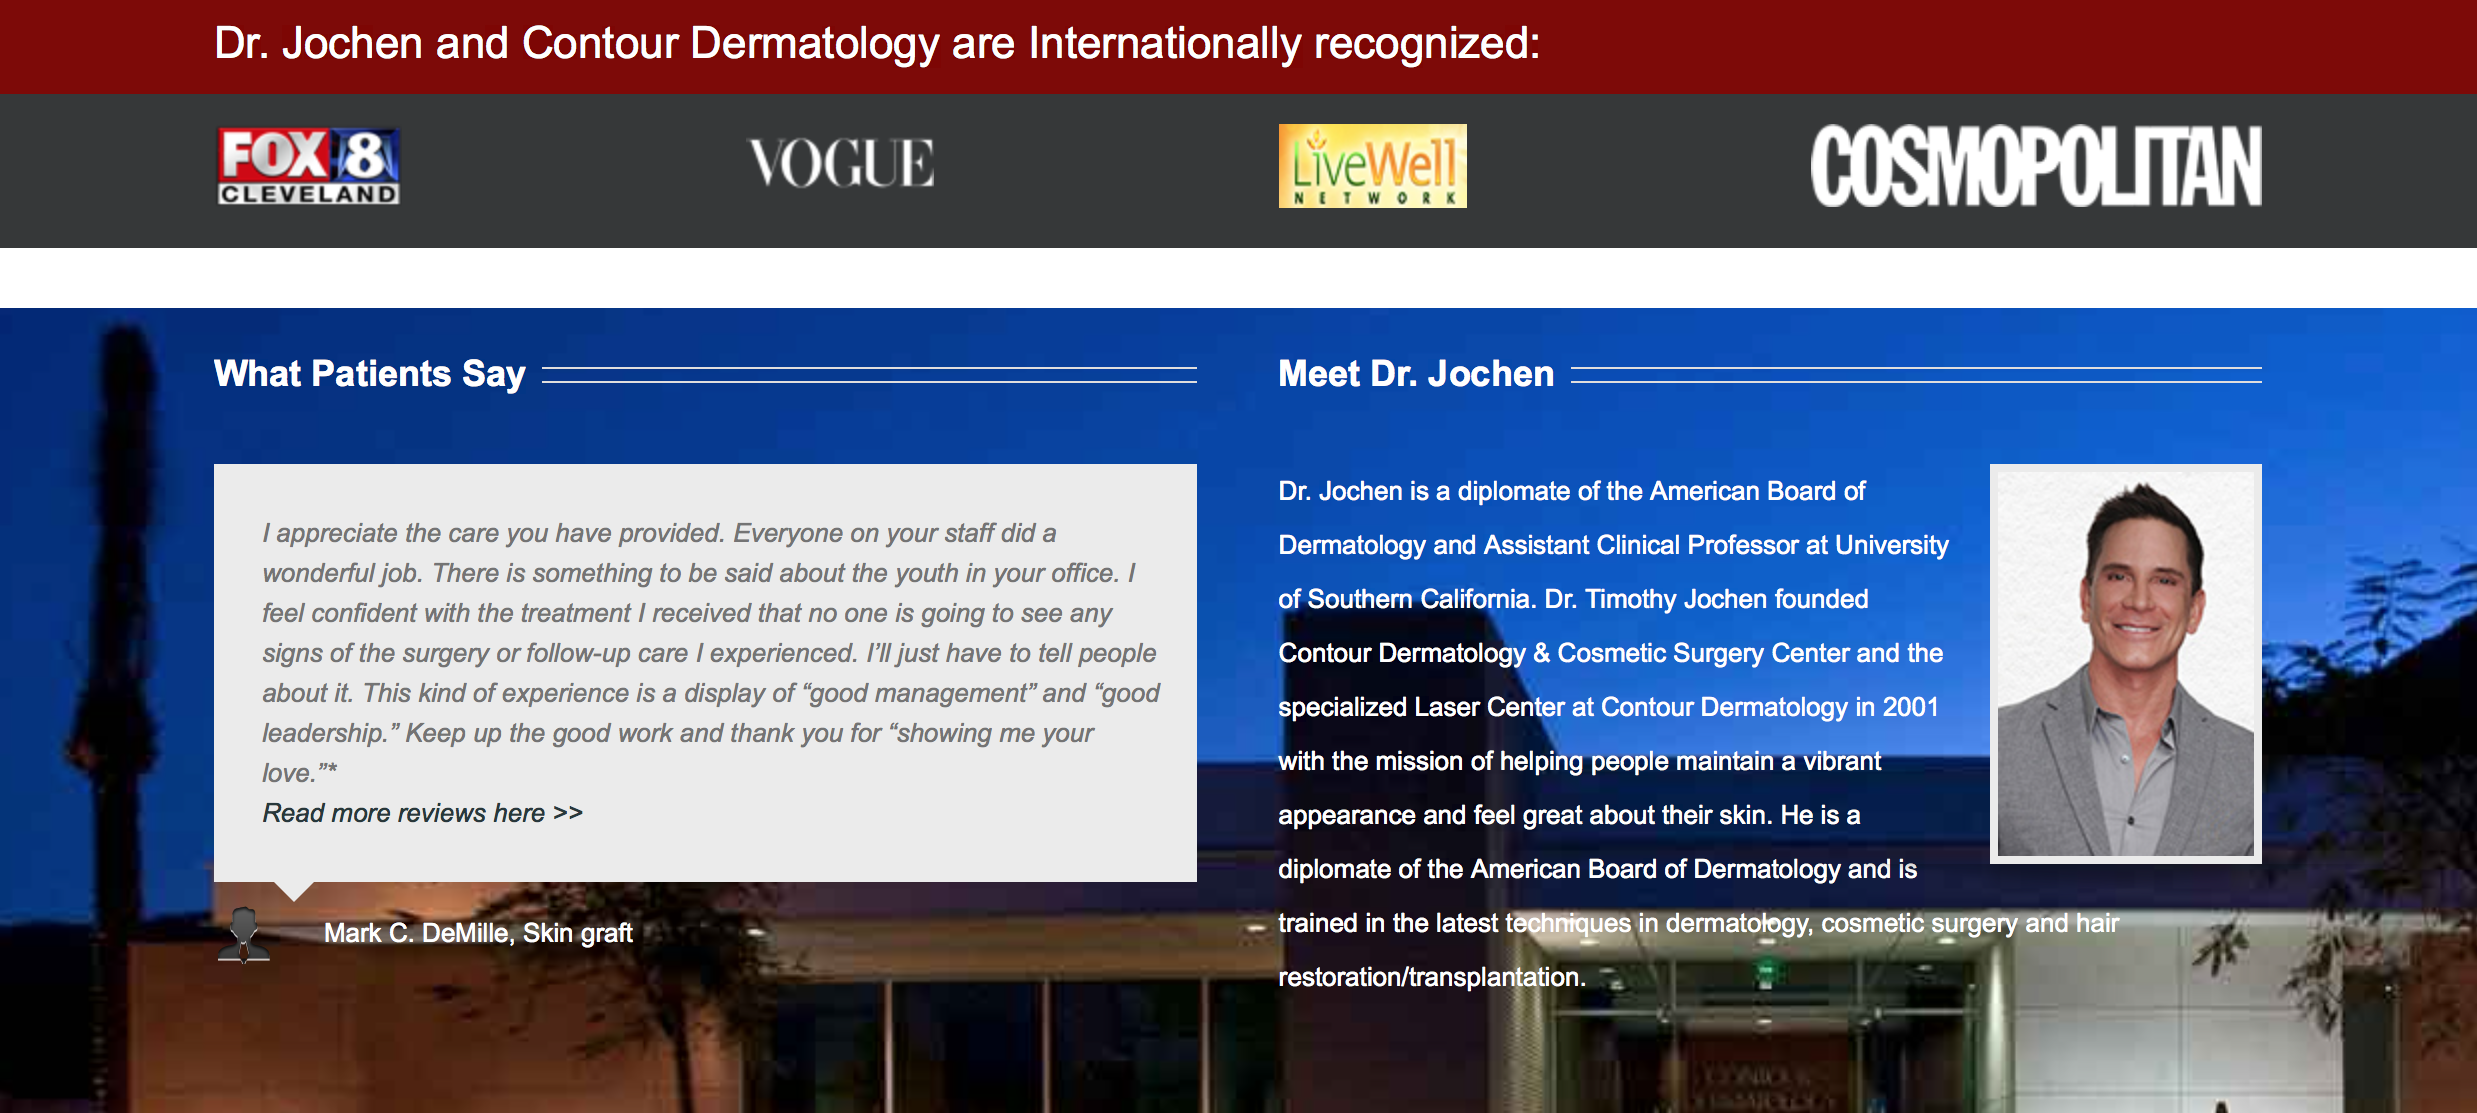 A top dermatology website is contour dermatology.